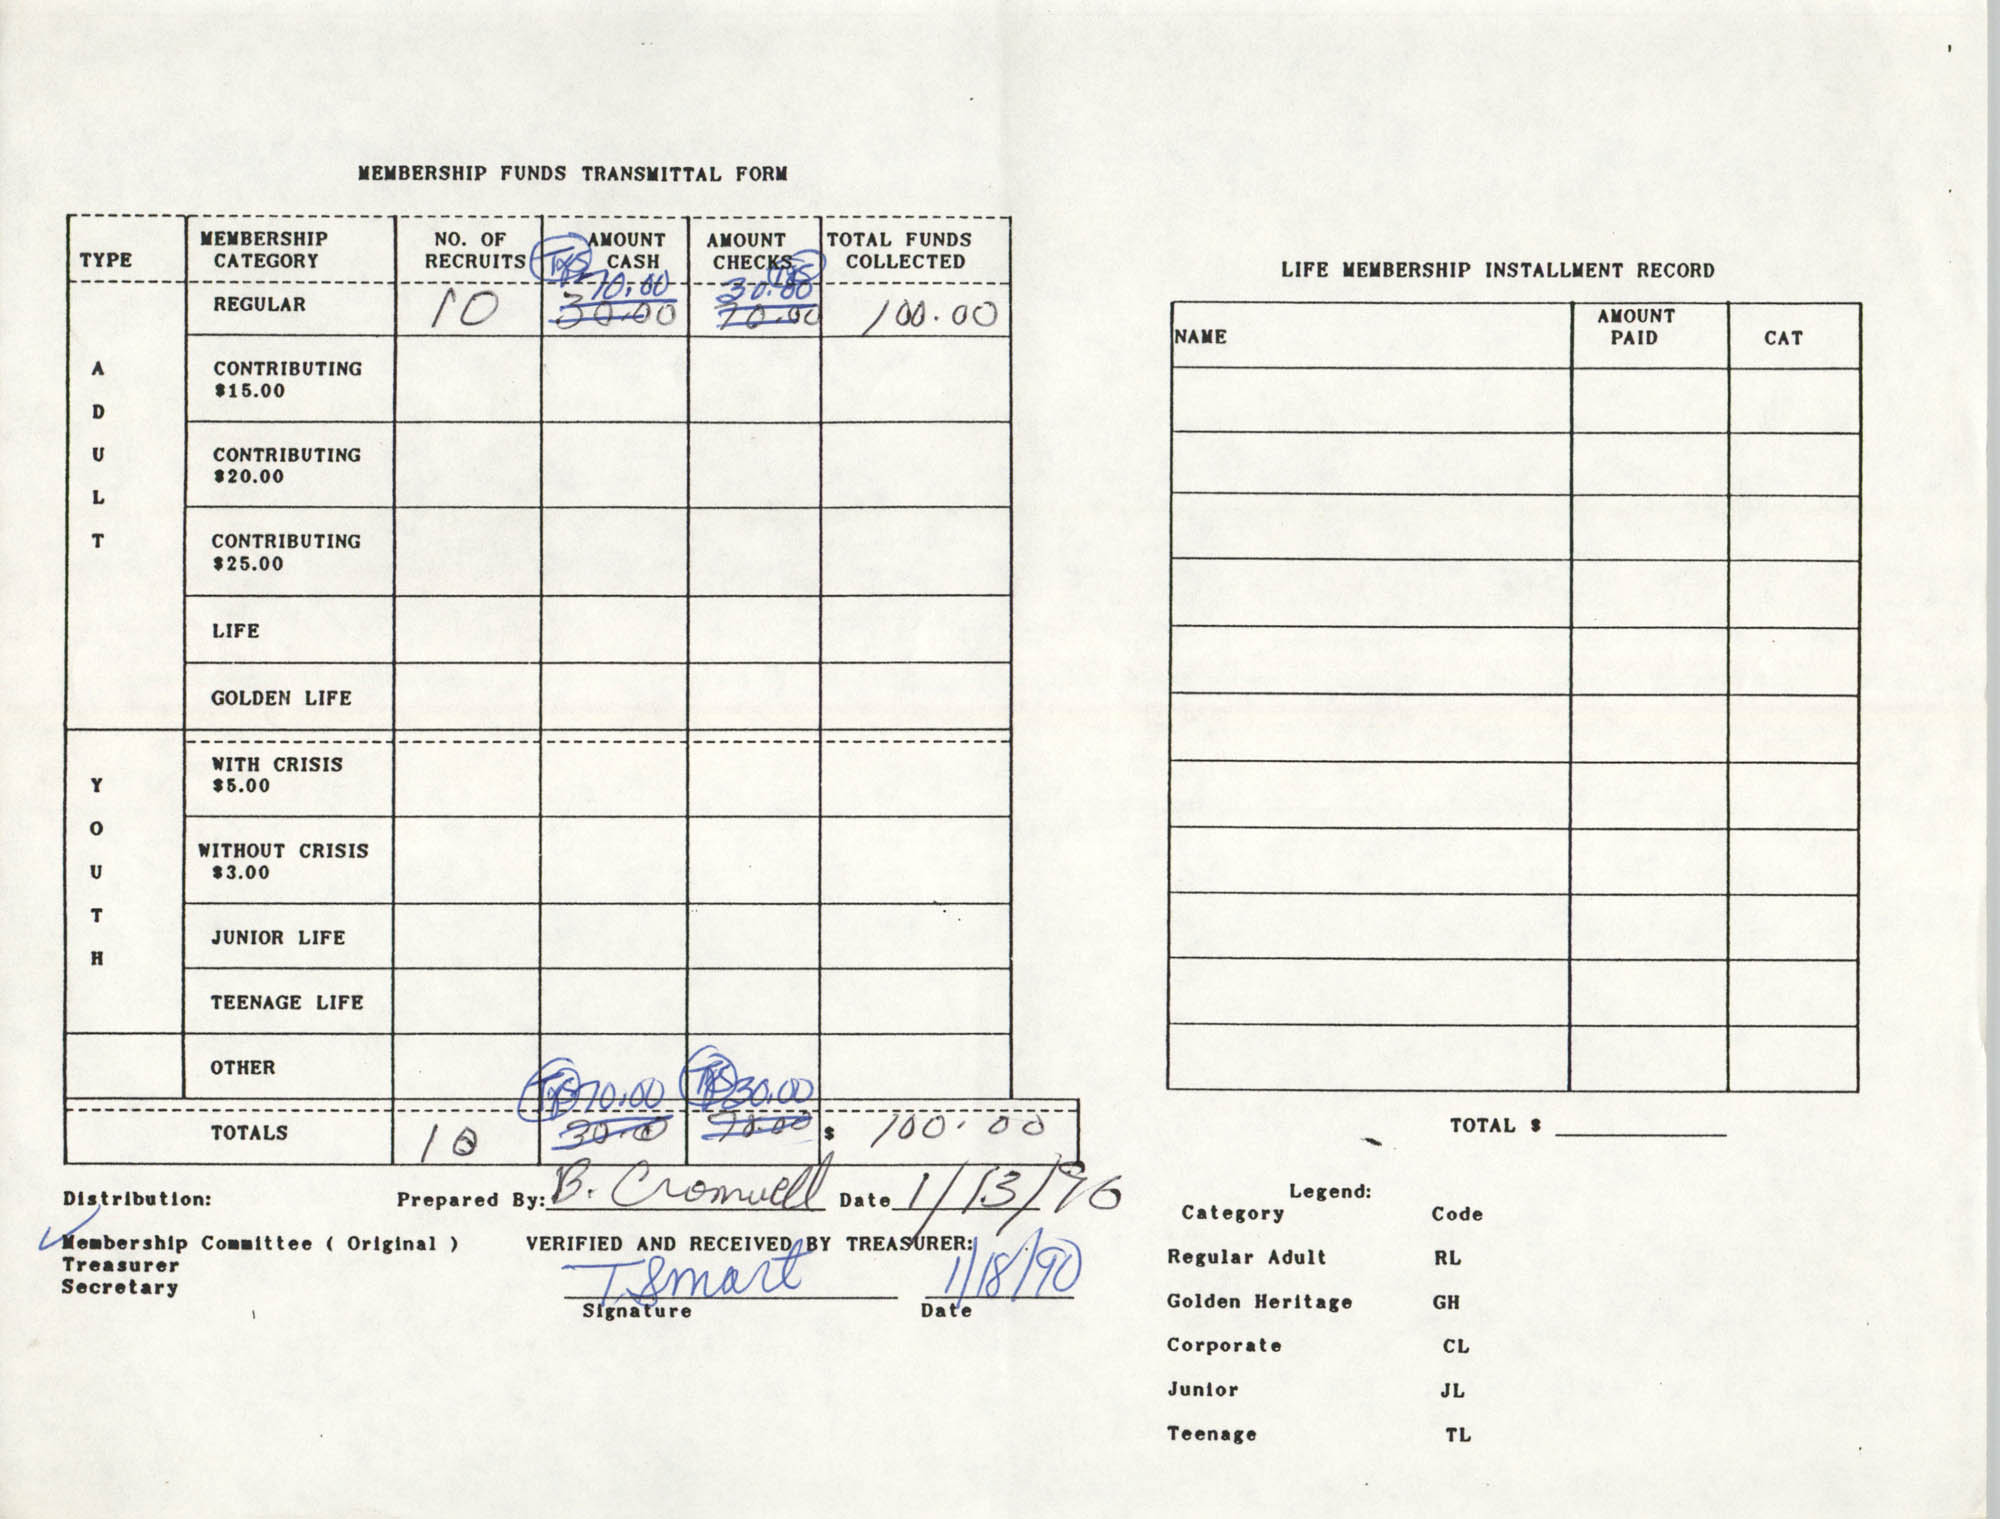 Charleston Branch of the NAACP Funds Transmittal Forms, January 1990, Page 4